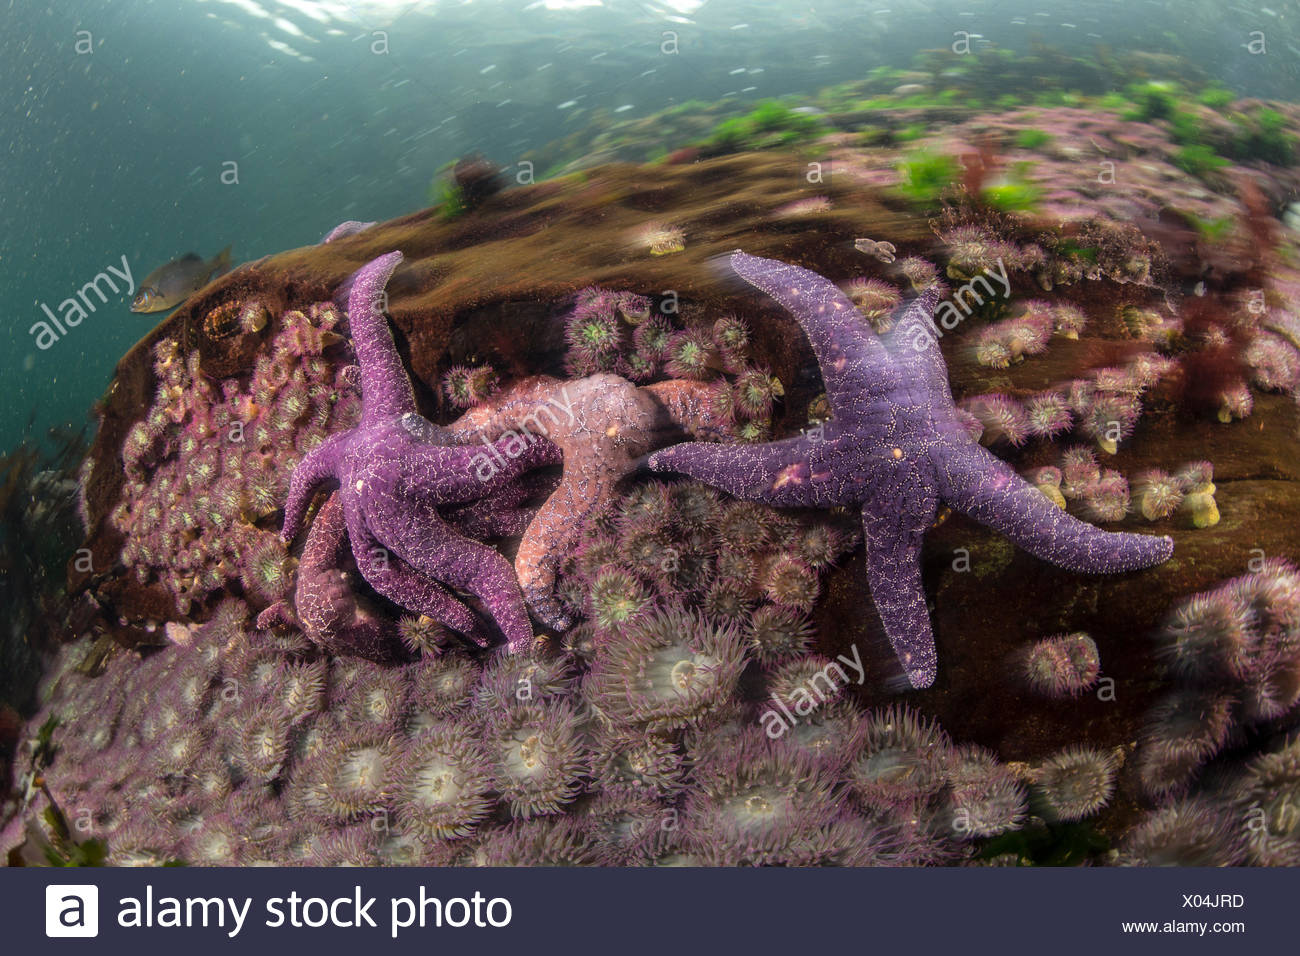 Ochre starfish in waters off the coast of British Columbia. - Stock Image